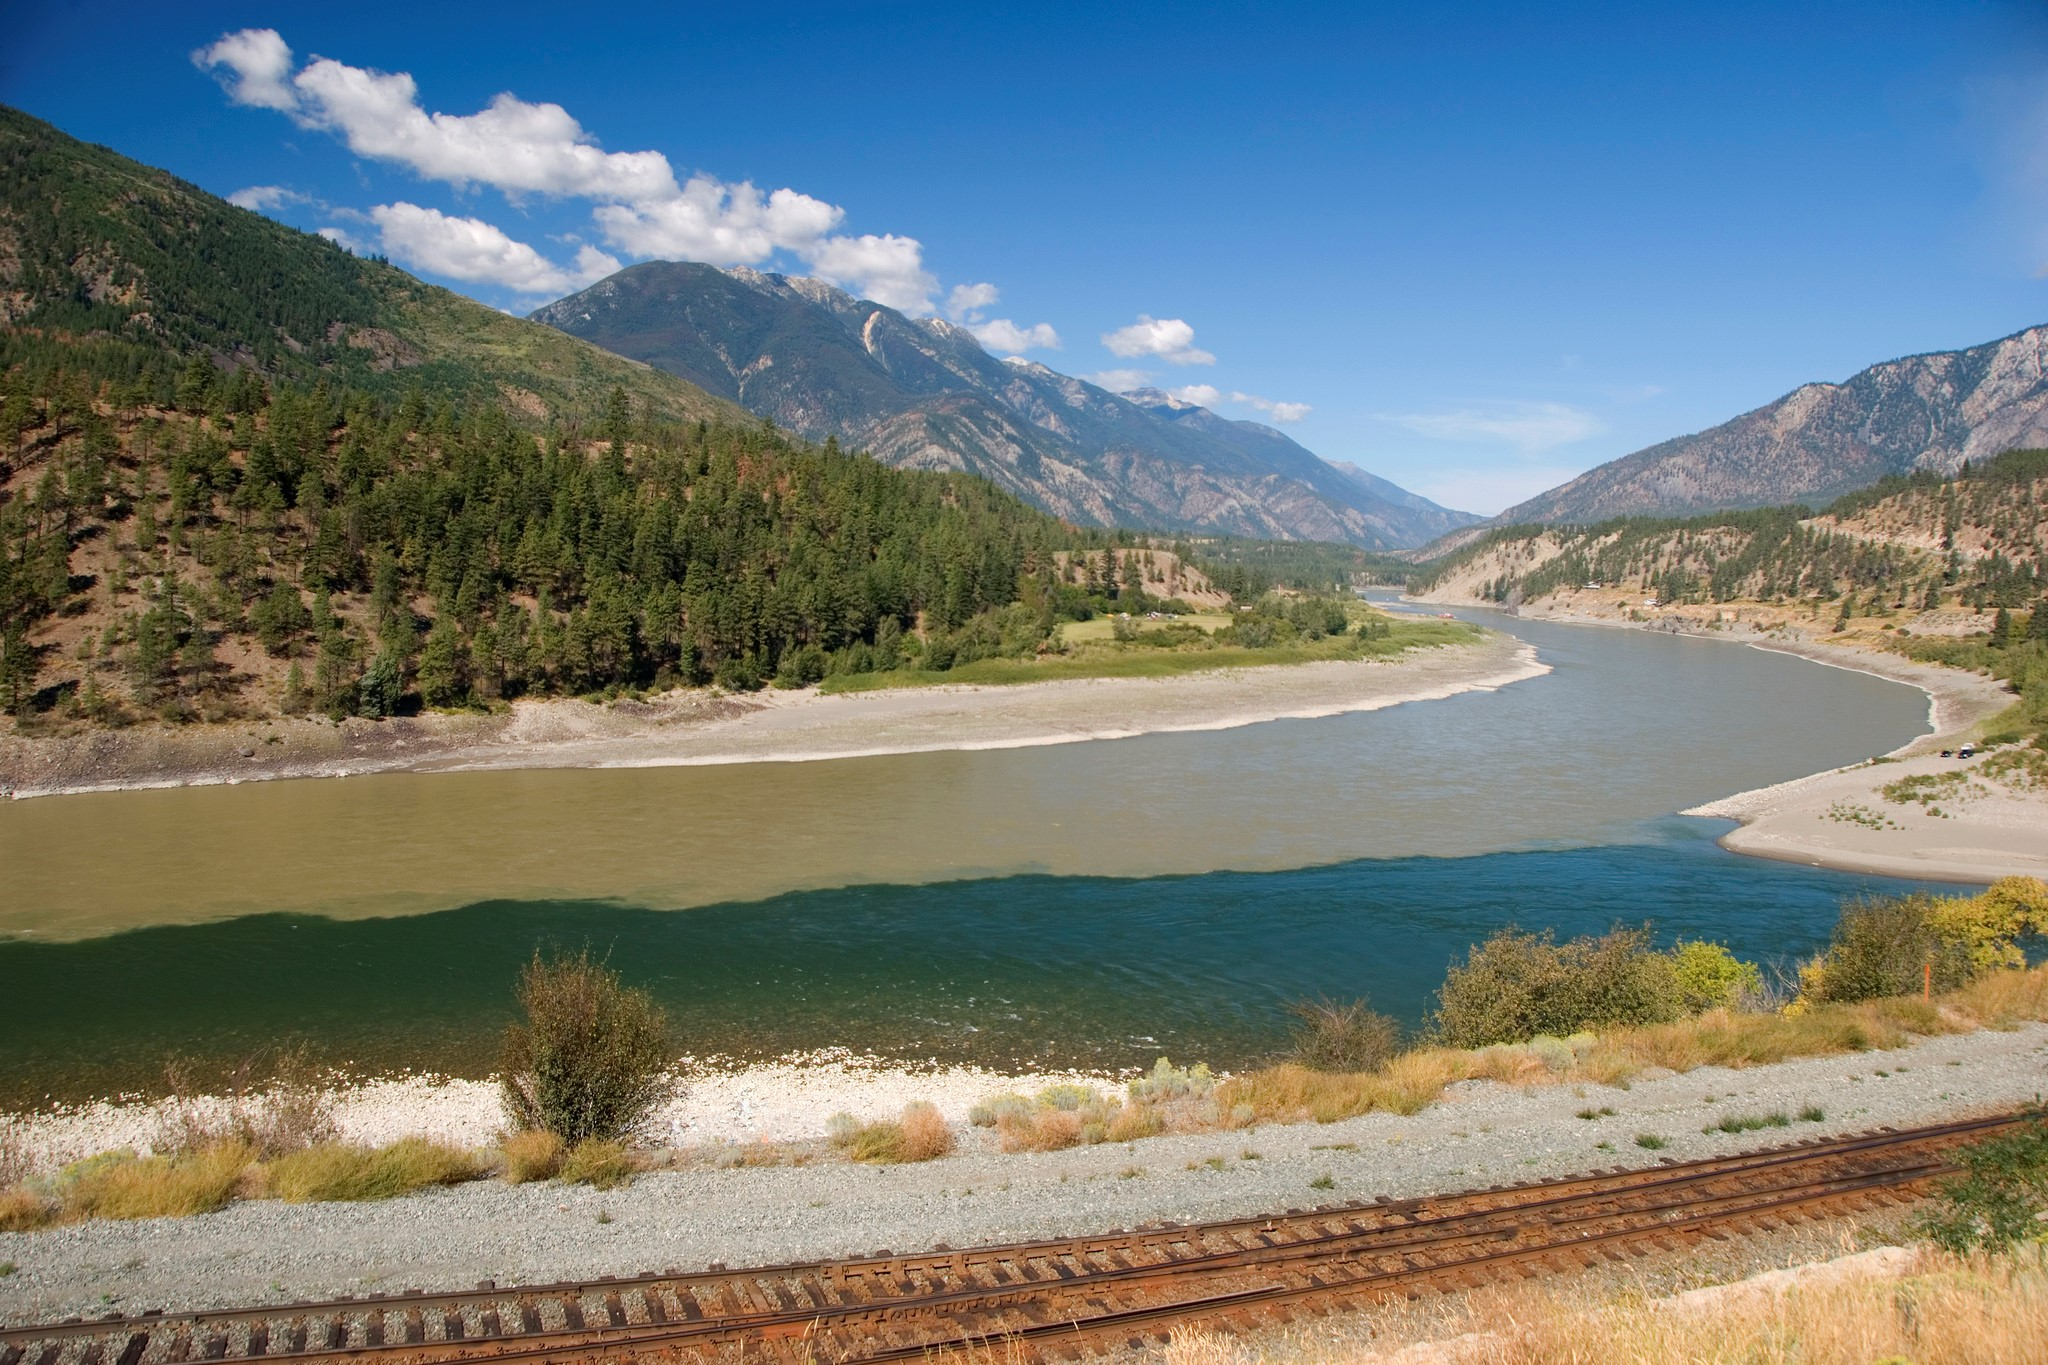 The meeting of the Fraser and Thompson Rivers in Lytton | Photo: Province of British Columbia